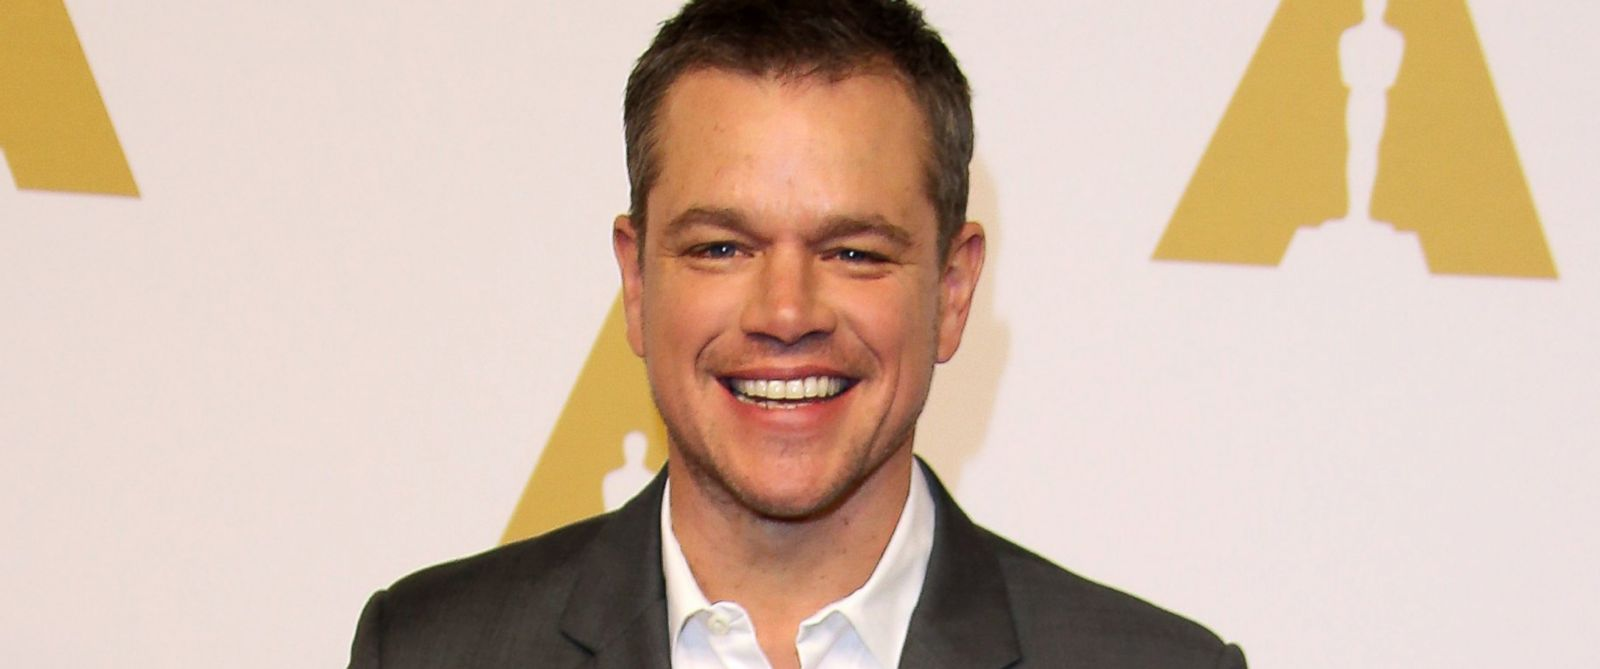 The Moment Matt Damon Broke Down When Filming 'The Martian' - ABC News